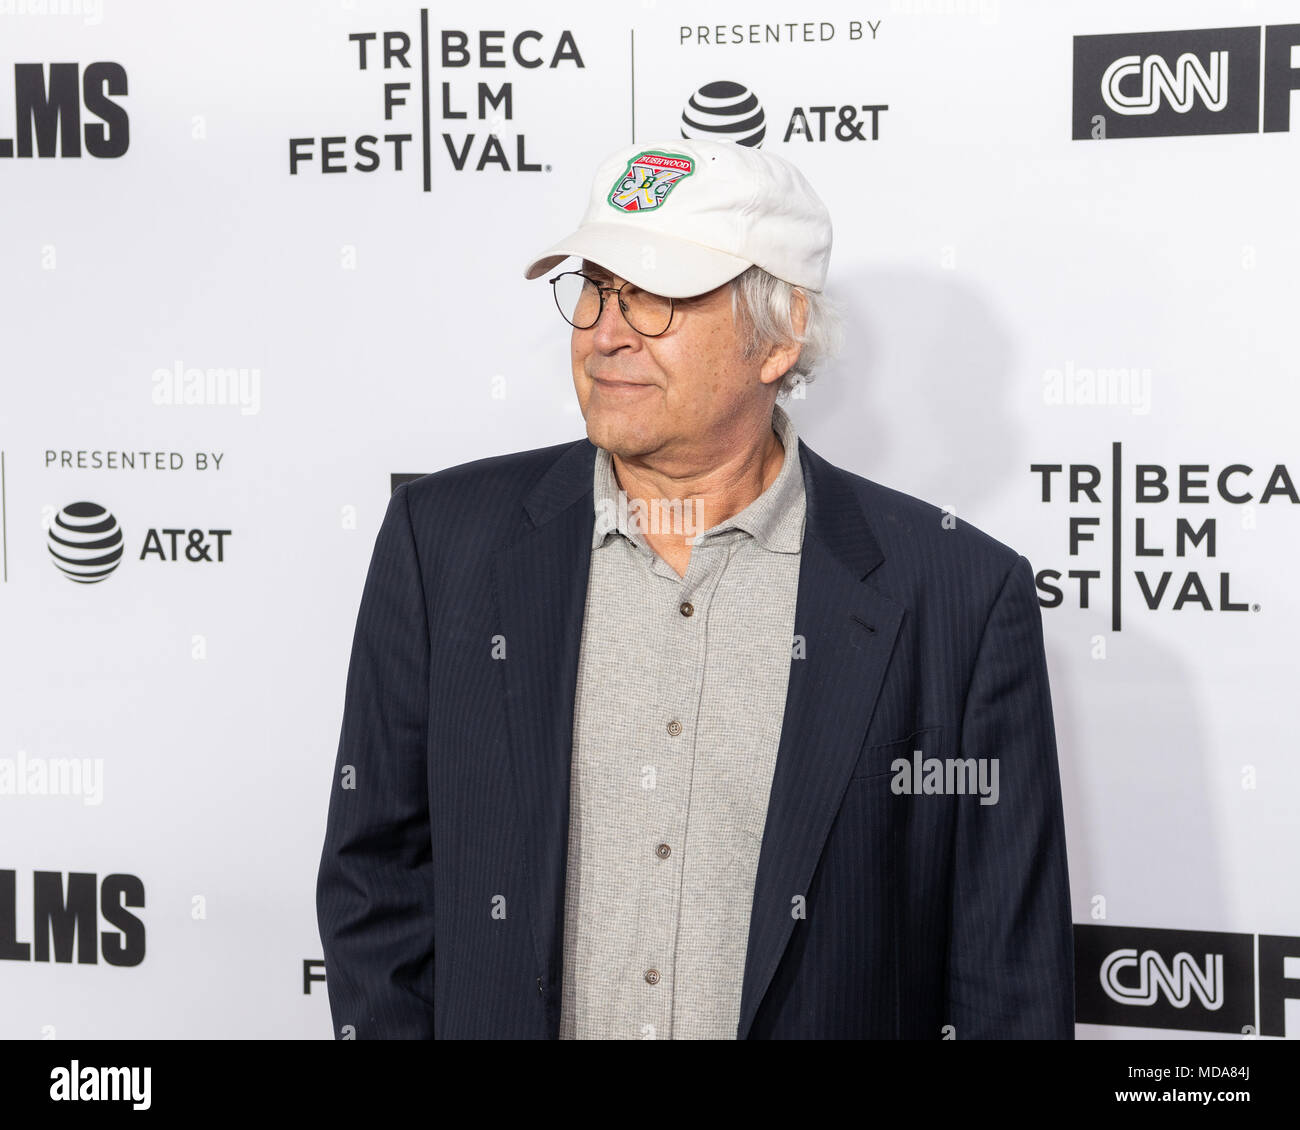 Calm And Cool In Chevy Chase In 2019: Chevy Chase Tribeca Film Festival Stock Photos & Chevy